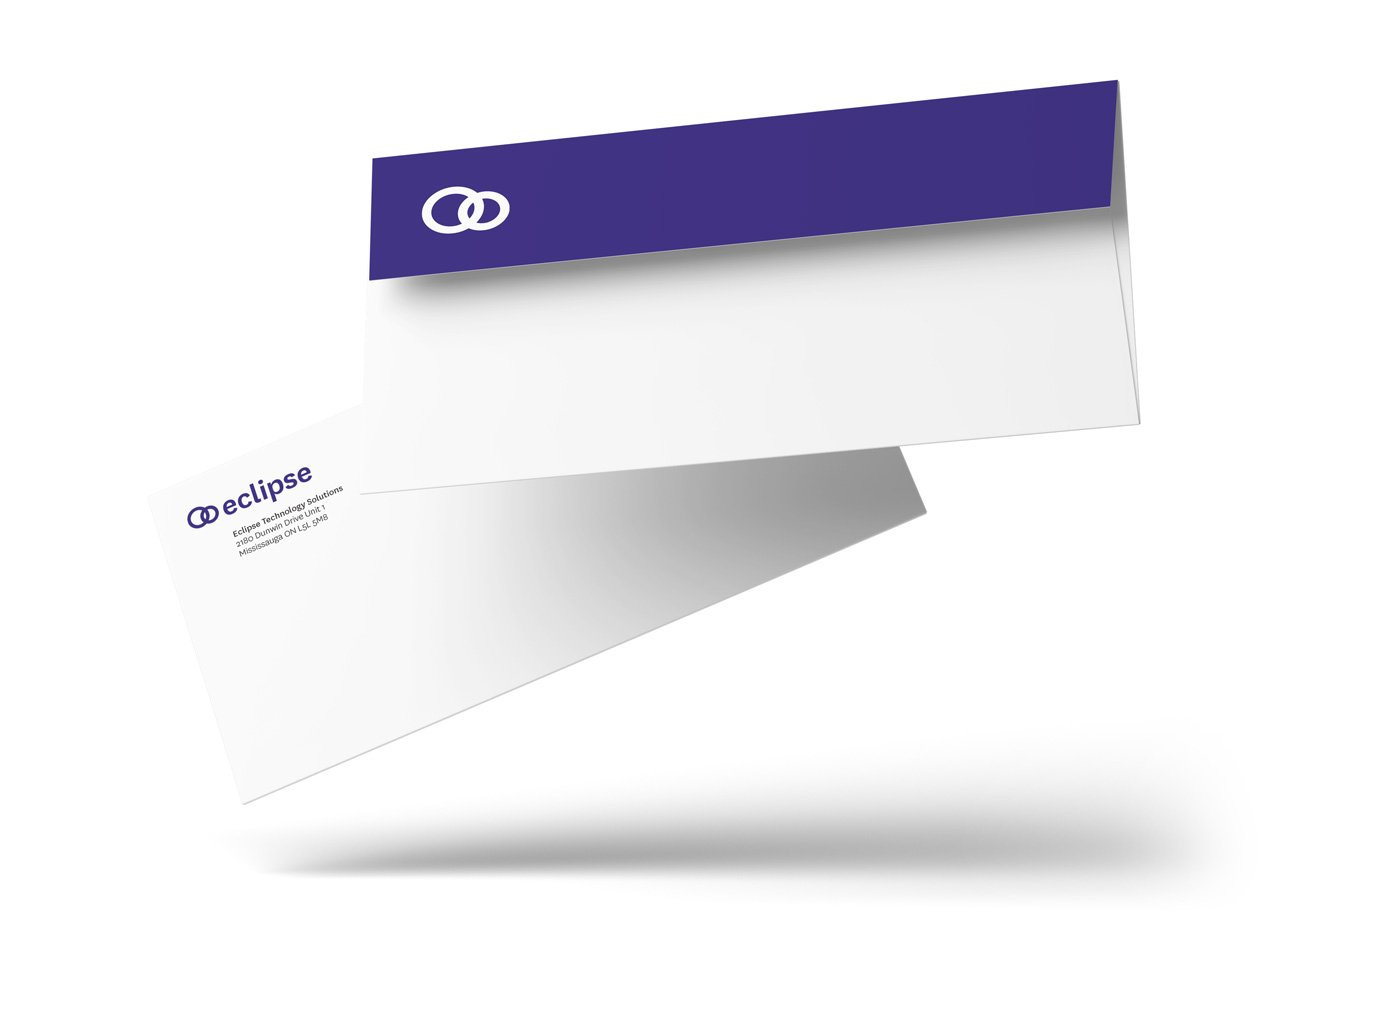 Technology solutions company stationery design envelope